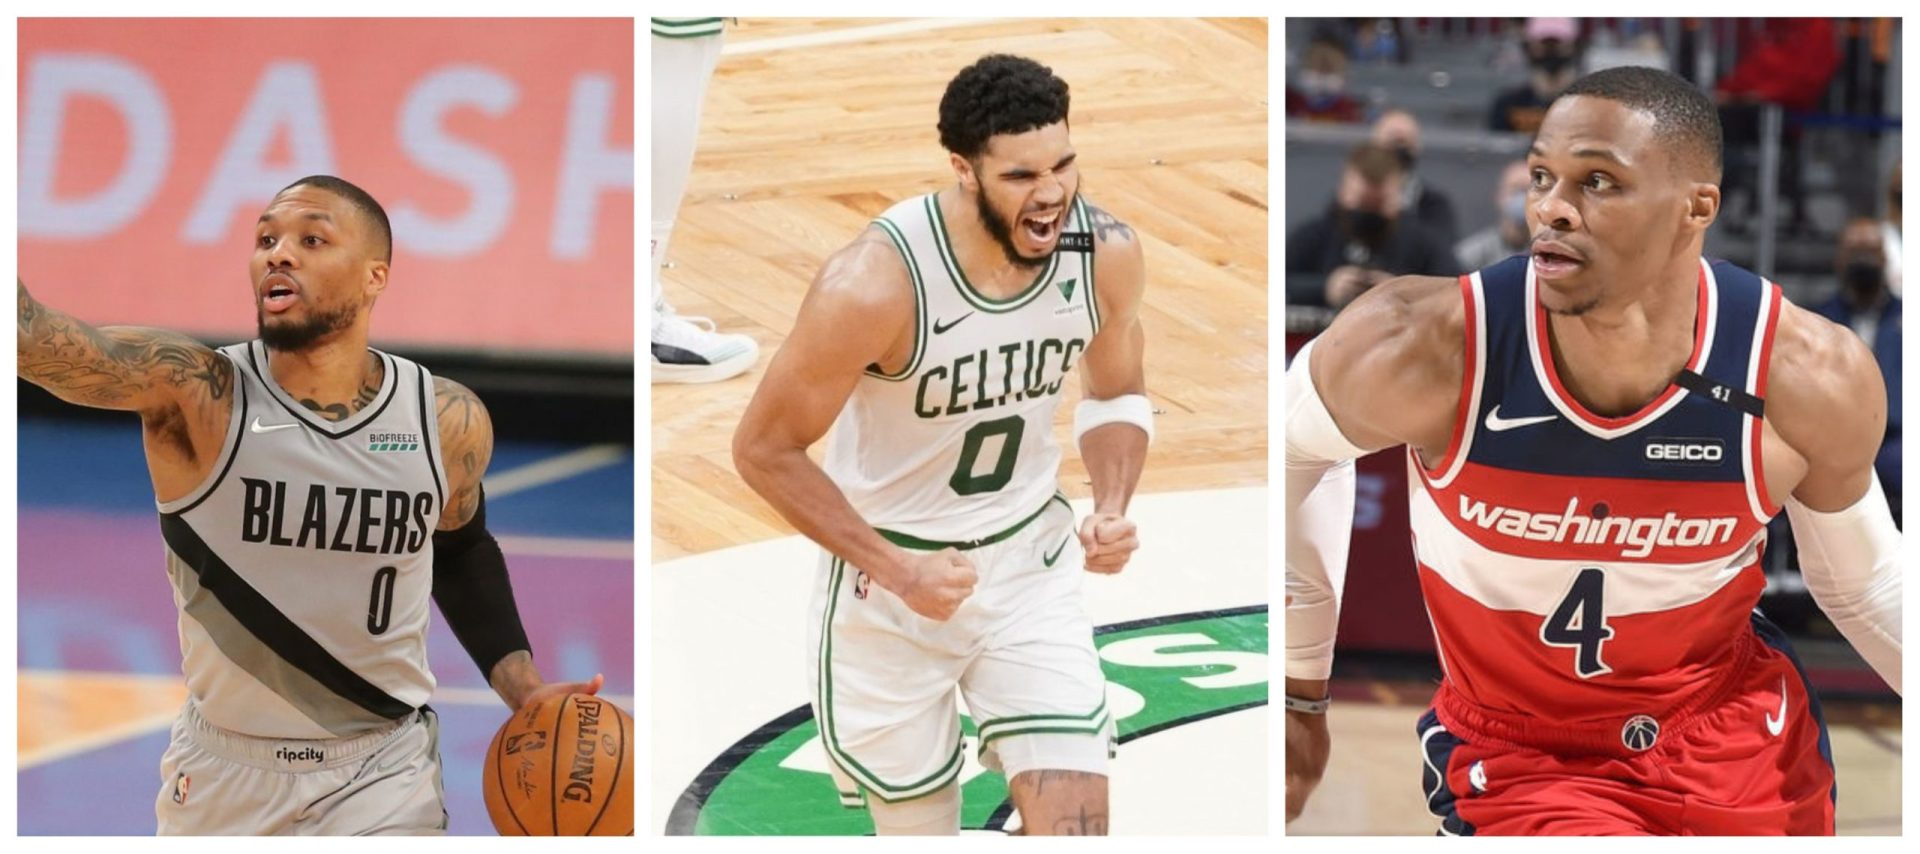 NBA Week 19 April 30 Results: Scores, standings, match summary, and highlights - THE SPORTS ROOM